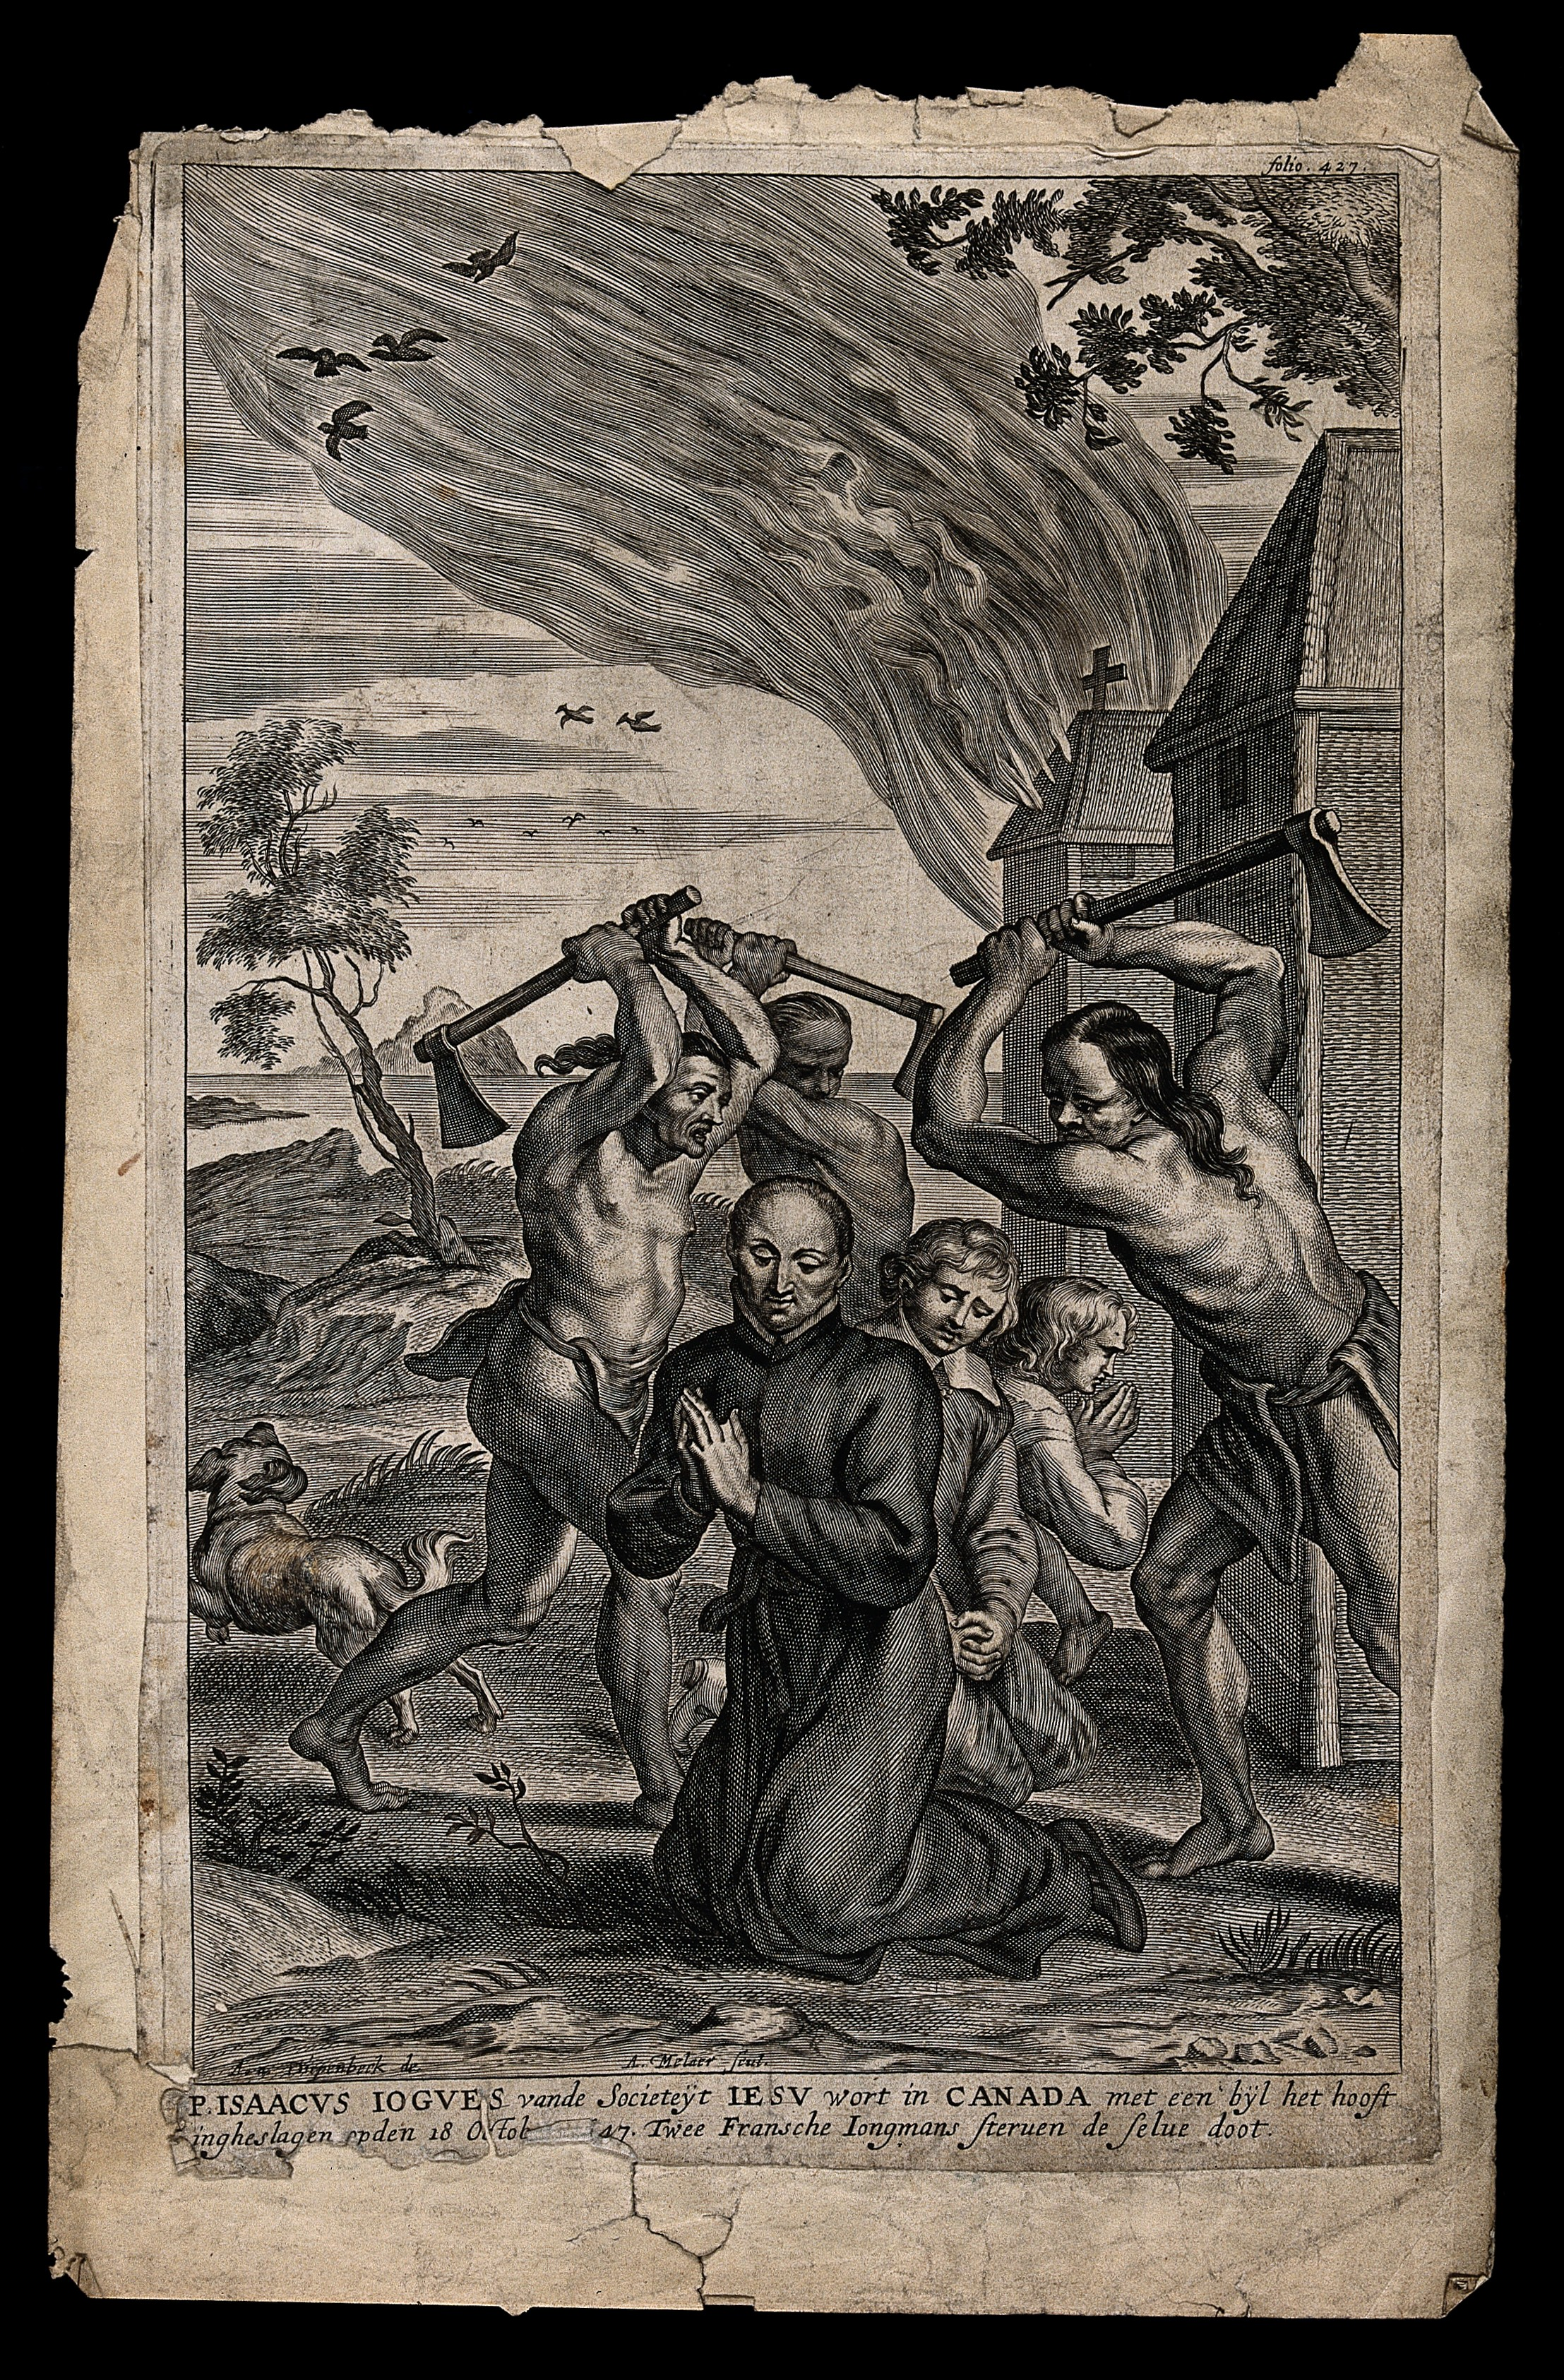 https://upload.wikimedia.org/wikipedia/commons/a/a3/Martyrdom_of_Father_Isaac_Jogues_S.J._Engraving_by_A._Malaer_Wellcome_V0032209.jpg